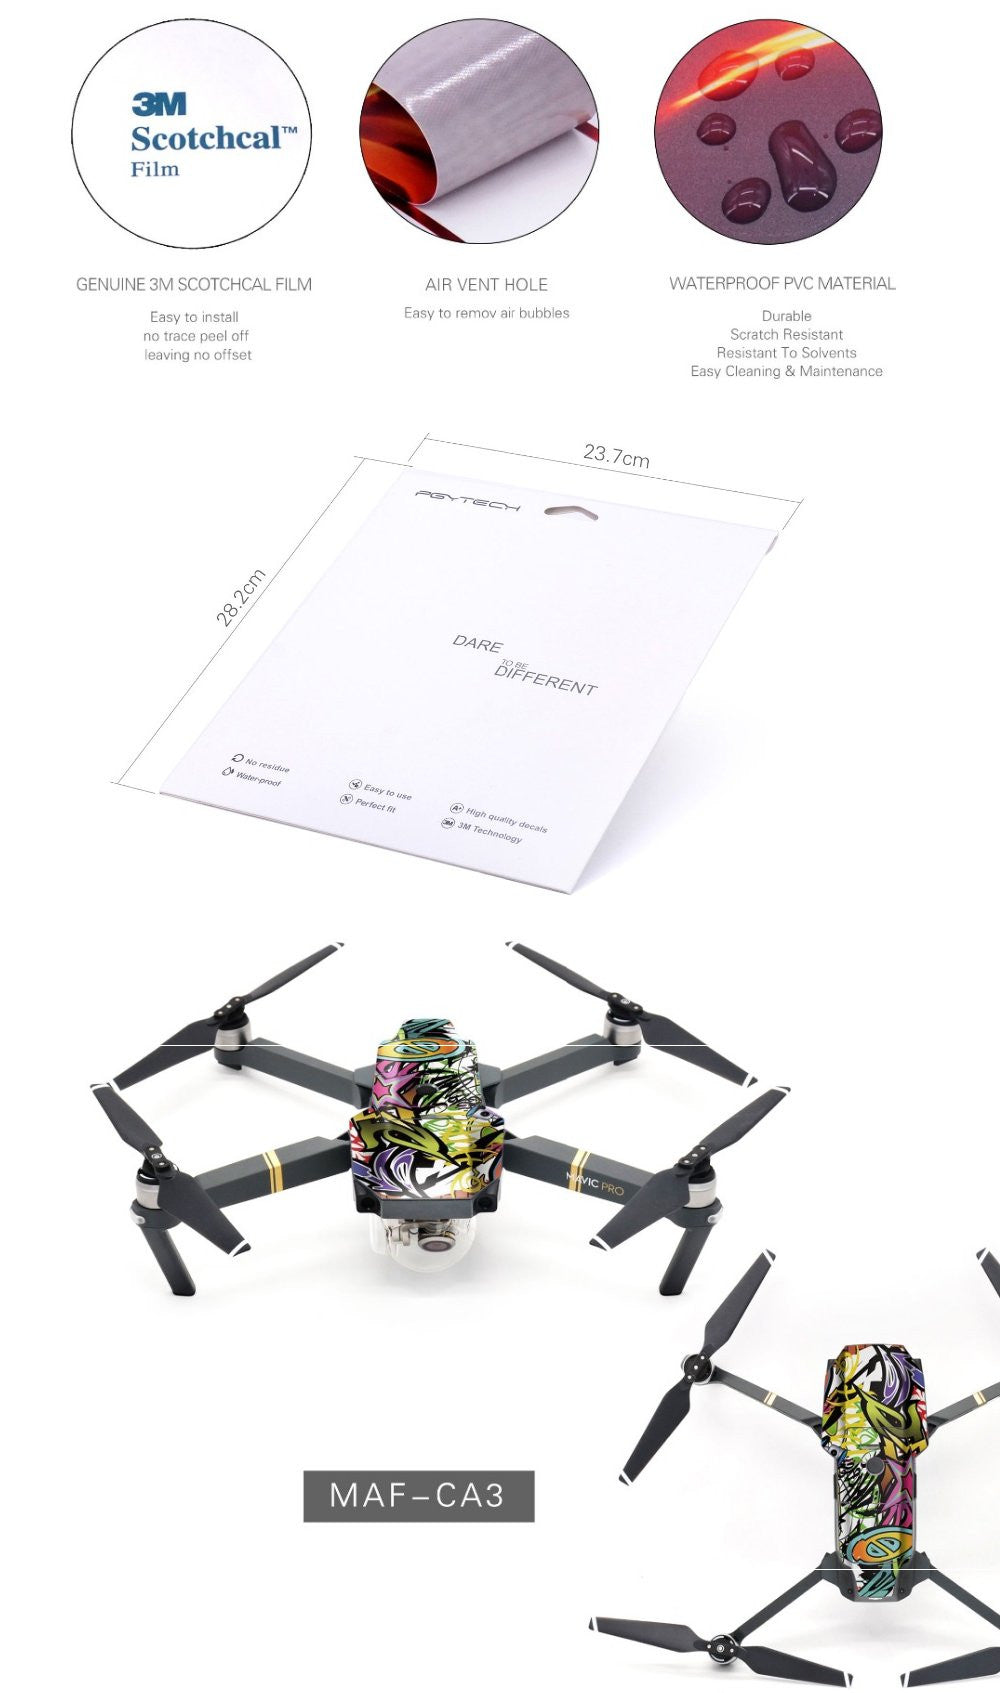 DJI Mavic Pro Sticker Decal Accessory Australia 3M